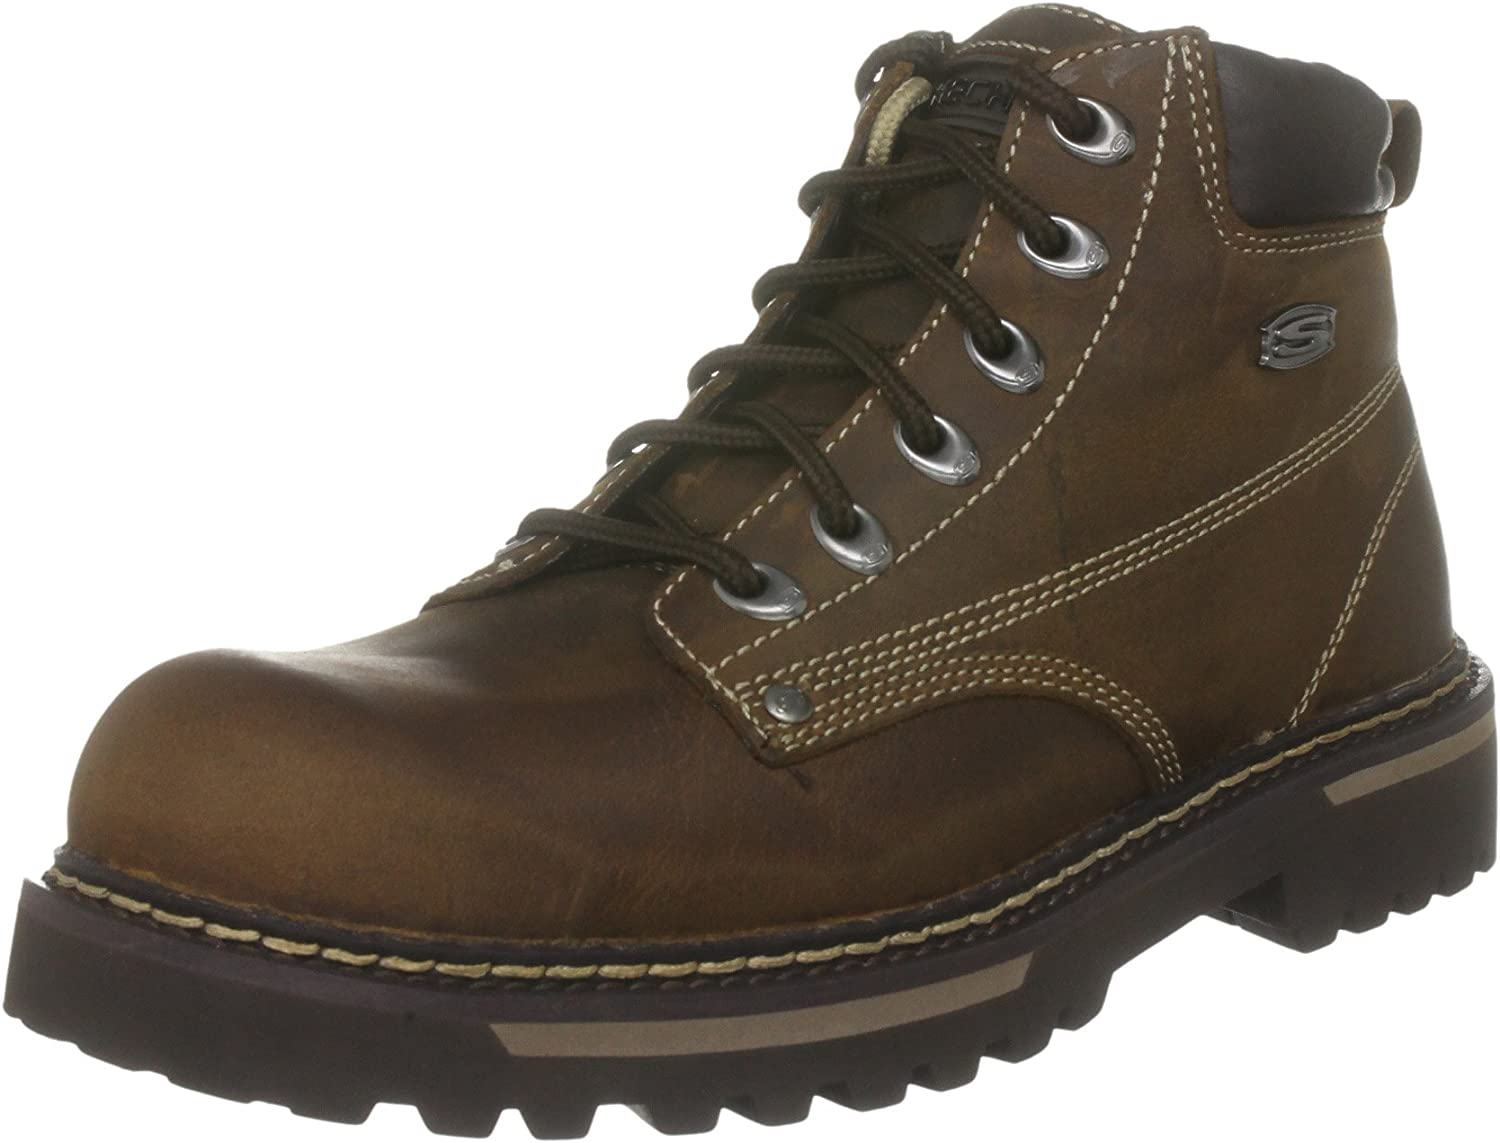 TALLA 41 EU. Skechers Cool Cat Bully II - Botas para Hombre